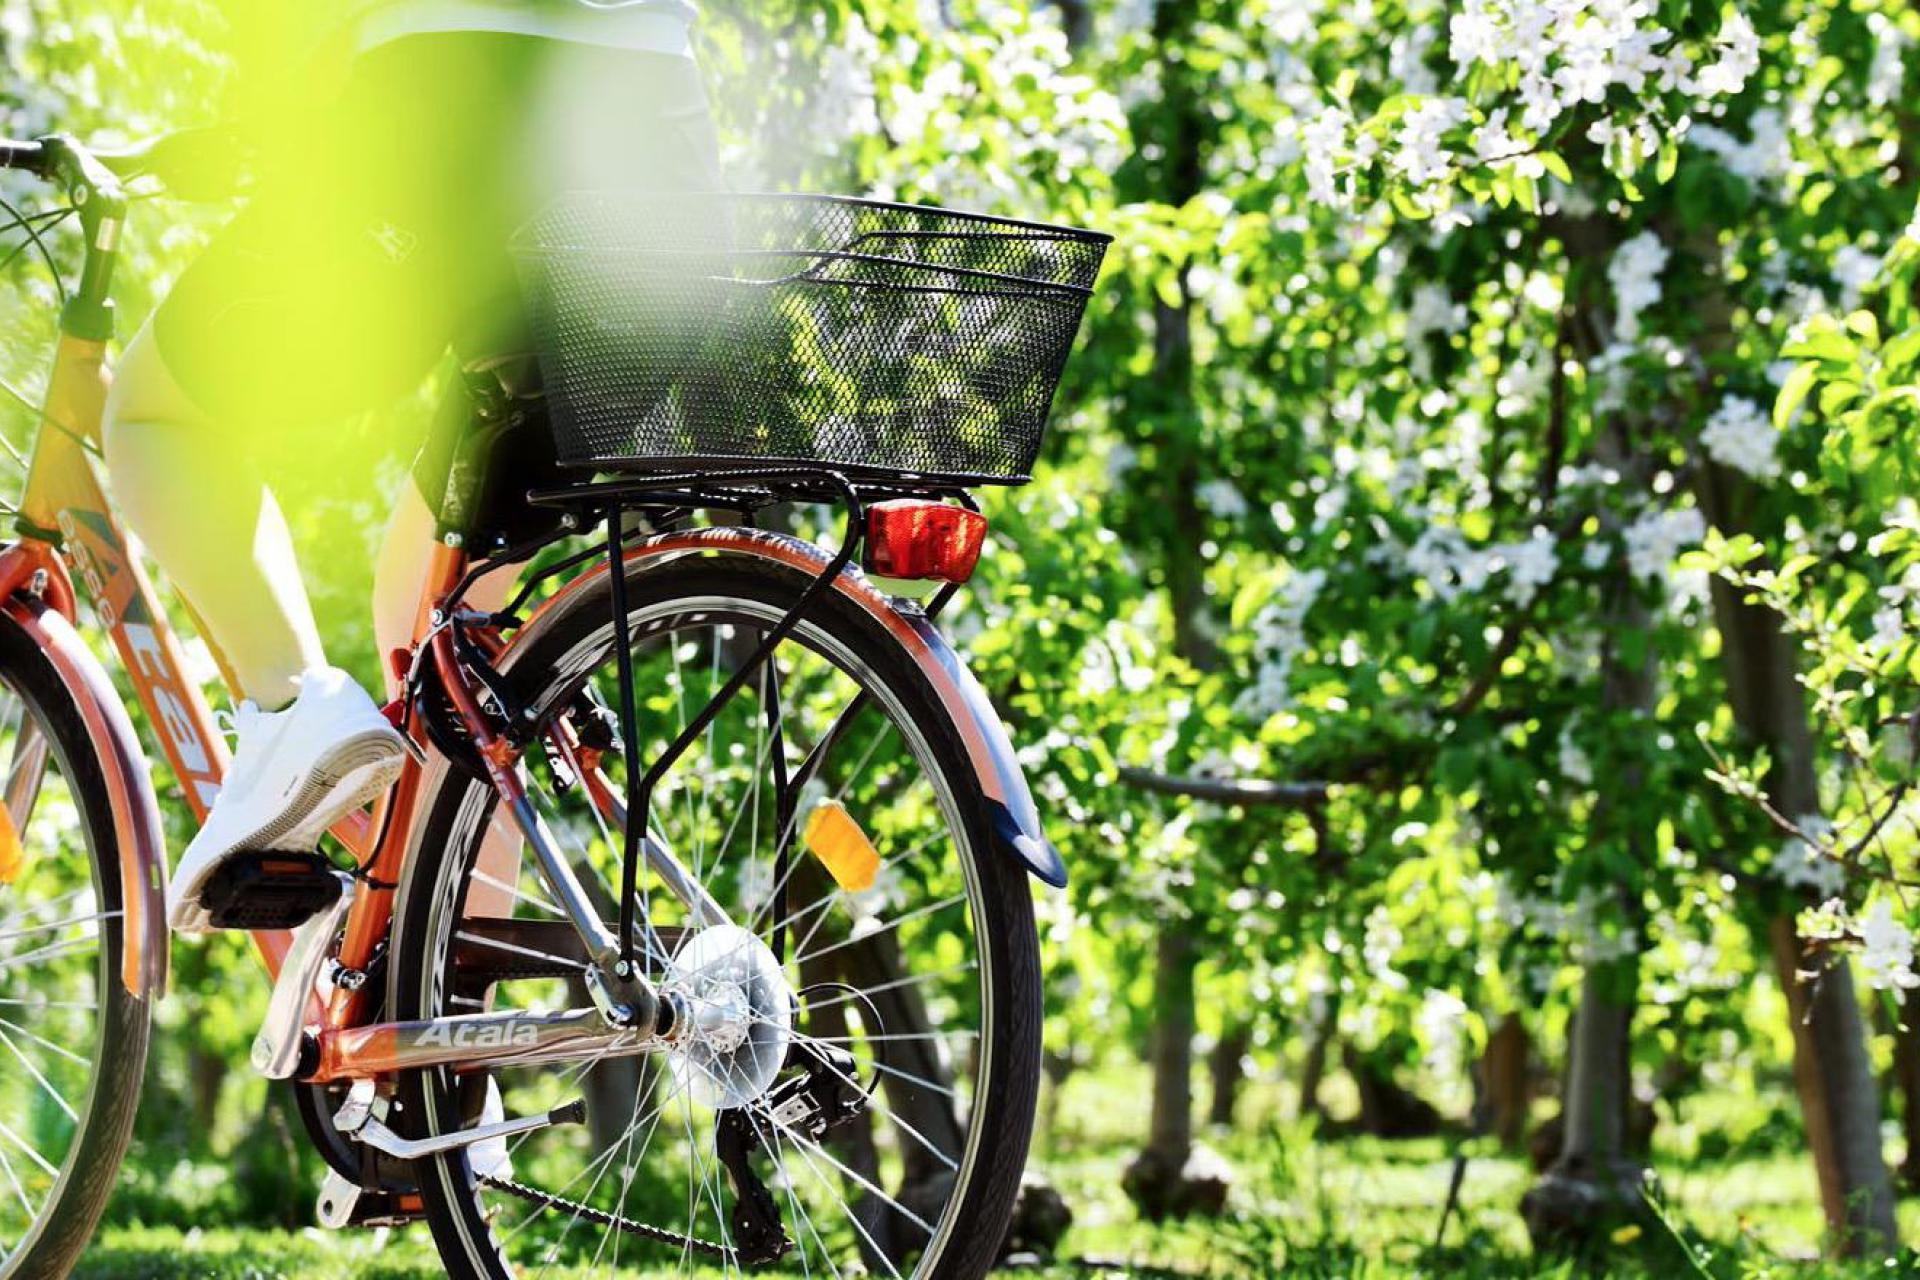 Agriturismo Dolomites Charming agriturismo in an apple orchard in the Dolomites